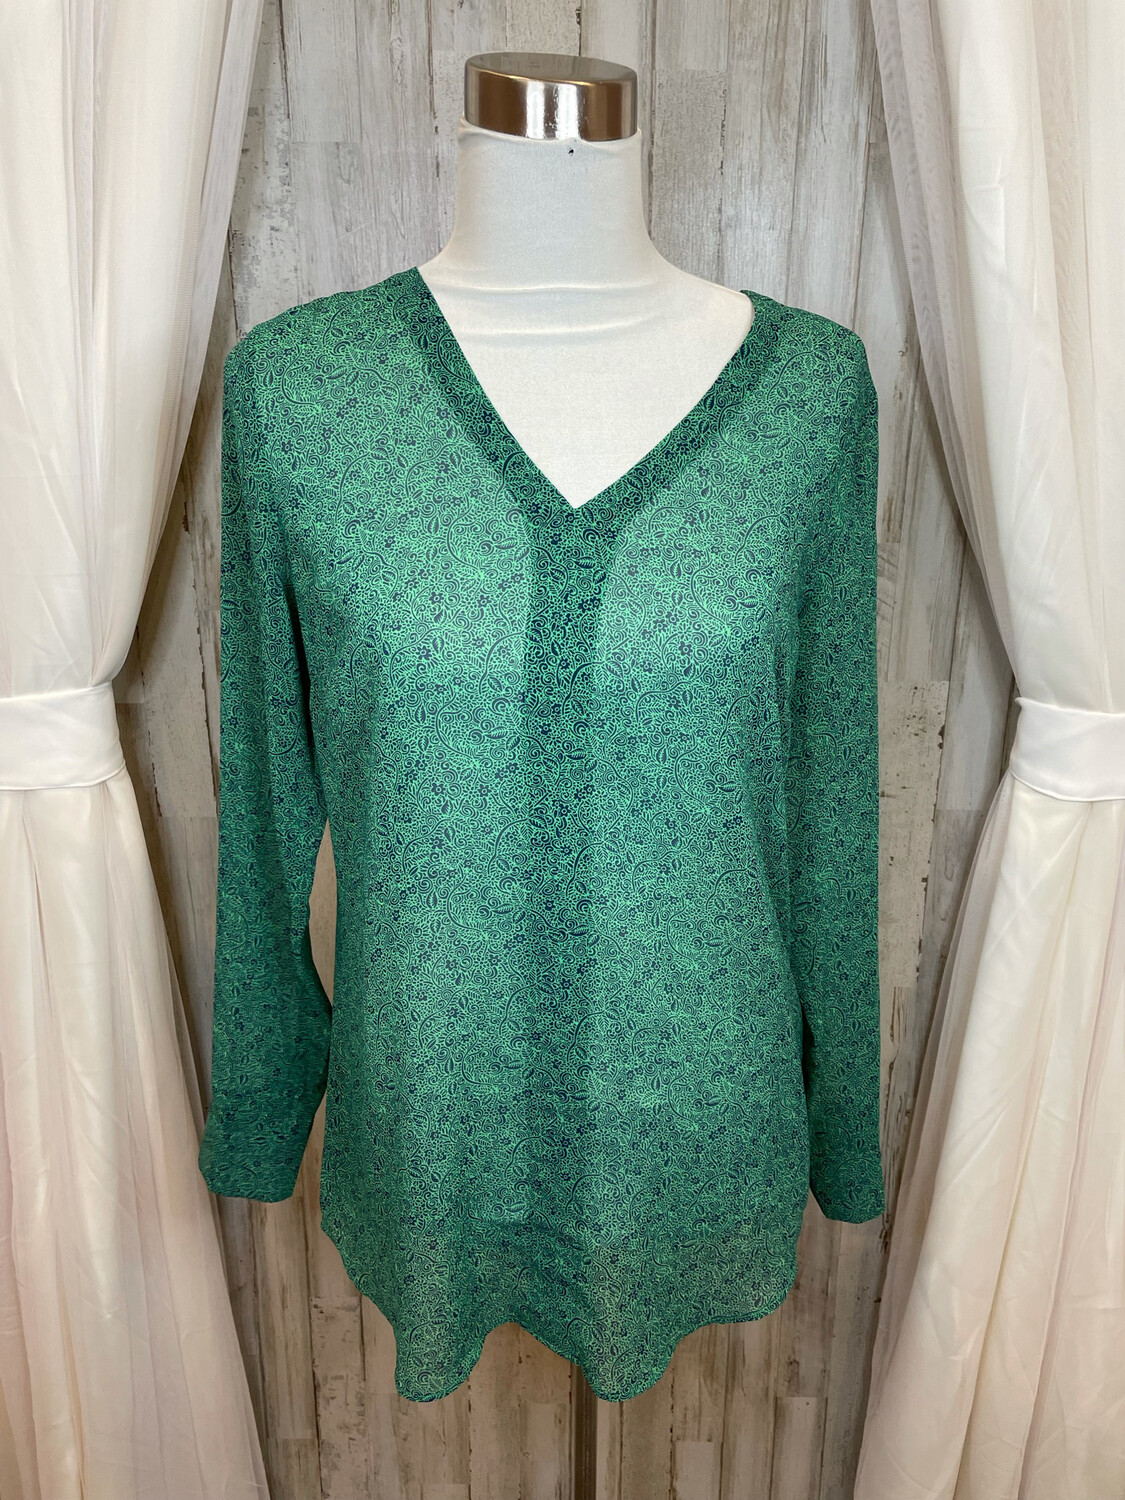 Cabi Green Top w/Blue Floral Print - S